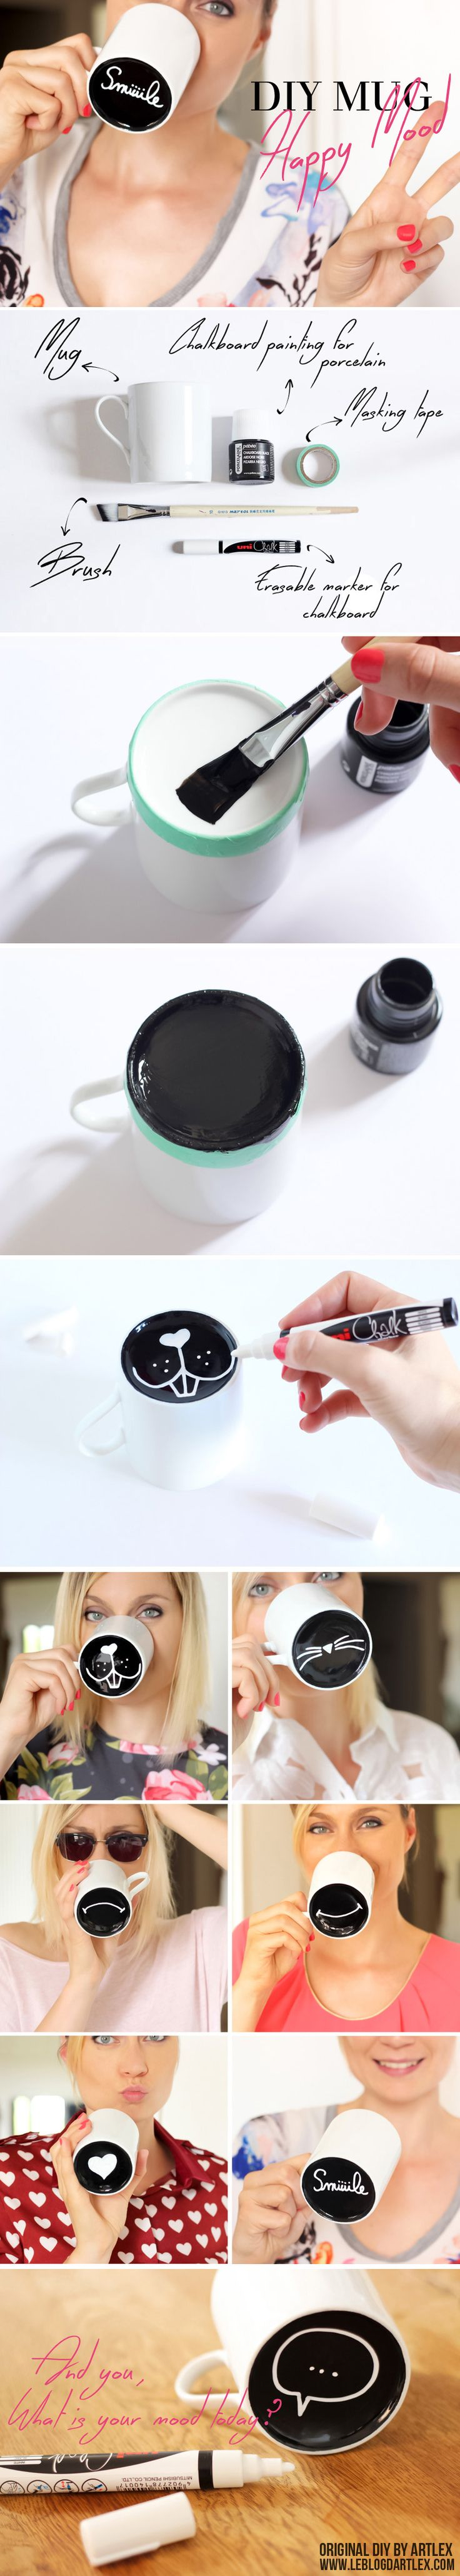 25 best ideas about diy mugs on pinterest mug decorating sharpie mugs and coffee mug sharpie. Black Bedroom Furniture Sets. Home Design Ideas